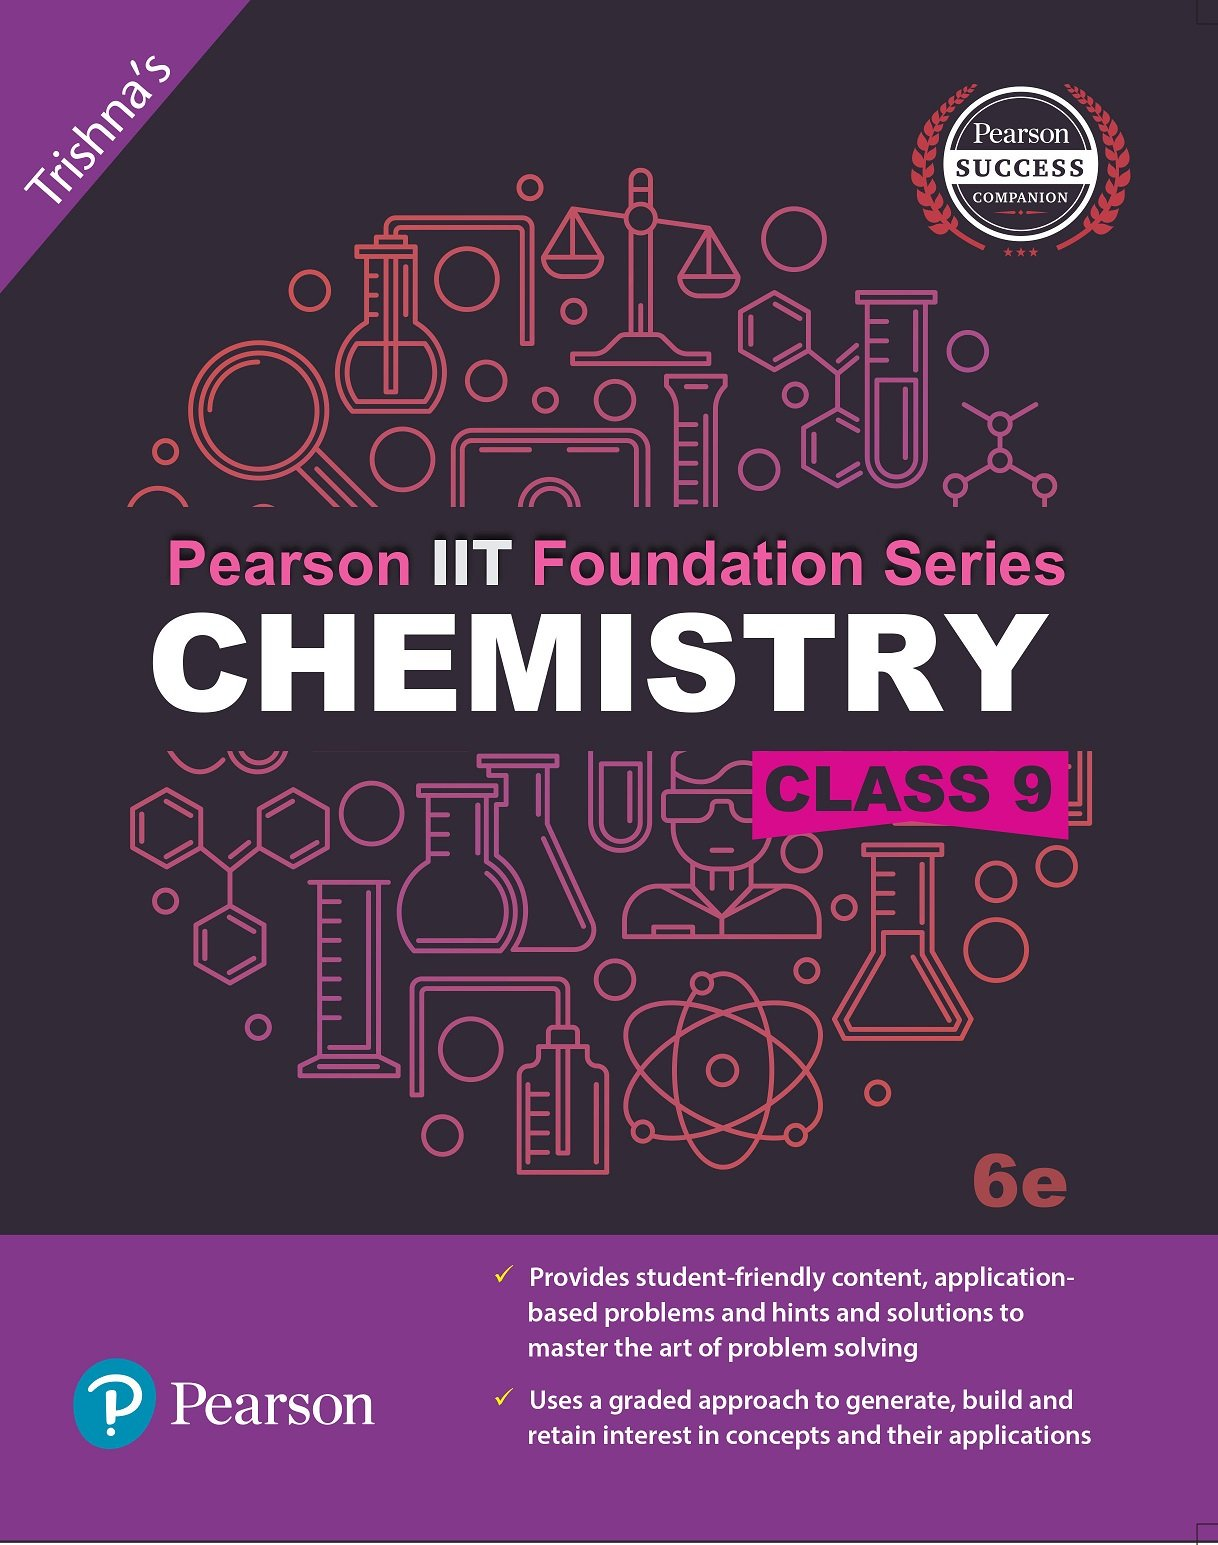 buy pearson iit foundation chemistry class 9 book online at low buy pearson iit foundation chemistry class 9 book online at low prices in pearson iit foundation chemistry class 9 reviews ratings in